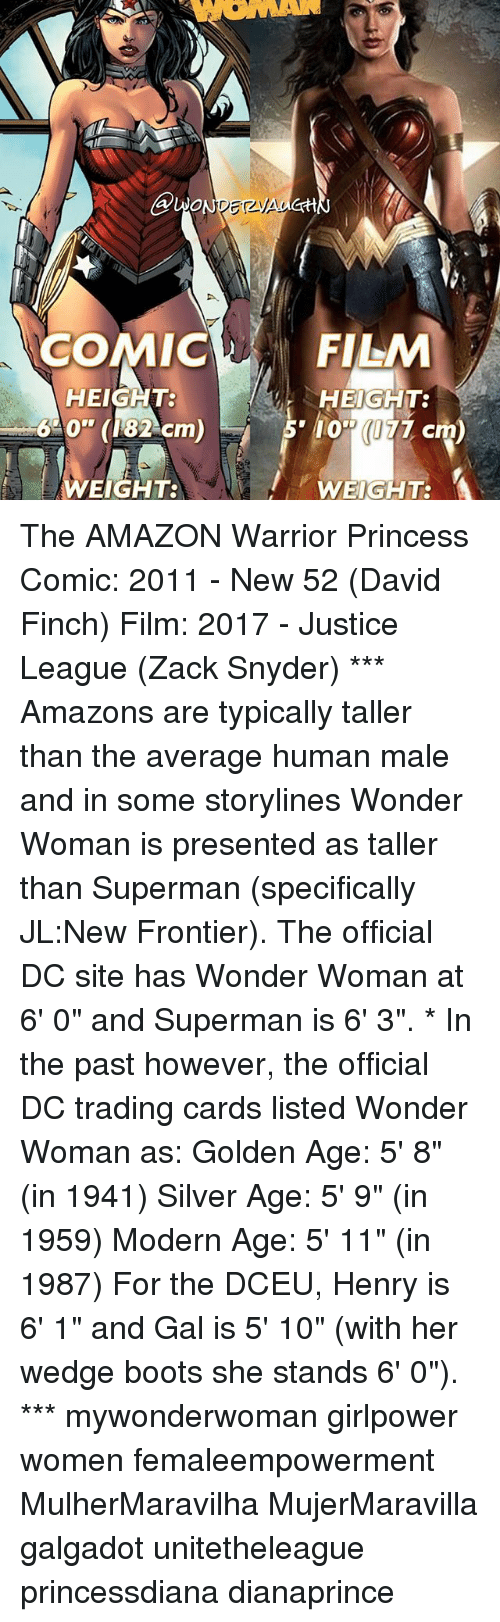 """frontier: ONO  COMIC  HEIGHT:  640"""" 82  cm  EIGHT:  FILM  r HEIGHT:  10' (177 cm  WEIGHT: A The AMAZON Warrior Princess Comic: 2011 - New 52 (David Finch) Film: 2017 - Justice League (Zack Snyder) *** Amazons are typically taller than the average human male and in some storylines Wonder Woman is presented as taller than Superman (specifically JL:New Frontier). The official DC site has Wonder Woman at 6' 0"""" and Superman is 6' 3"""". * In the past however, the official DC trading cards listed Wonder Woman as: Golden Age: 5' 8"""" (in 1941) Silver Age: 5' 9"""" (in 1959) Modern Age: 5' 11"""" (in 1987) For the DCEU, Henry is 6' 1"""" and Gal is 5' 10"""" (with her wedge boots she stands 6' 0""""). *** mywonderwoman girlpower women femaleempowerment MulherMaravilha MujerMaravilla galgadot unitetheleague princessdiana dianaprince"""